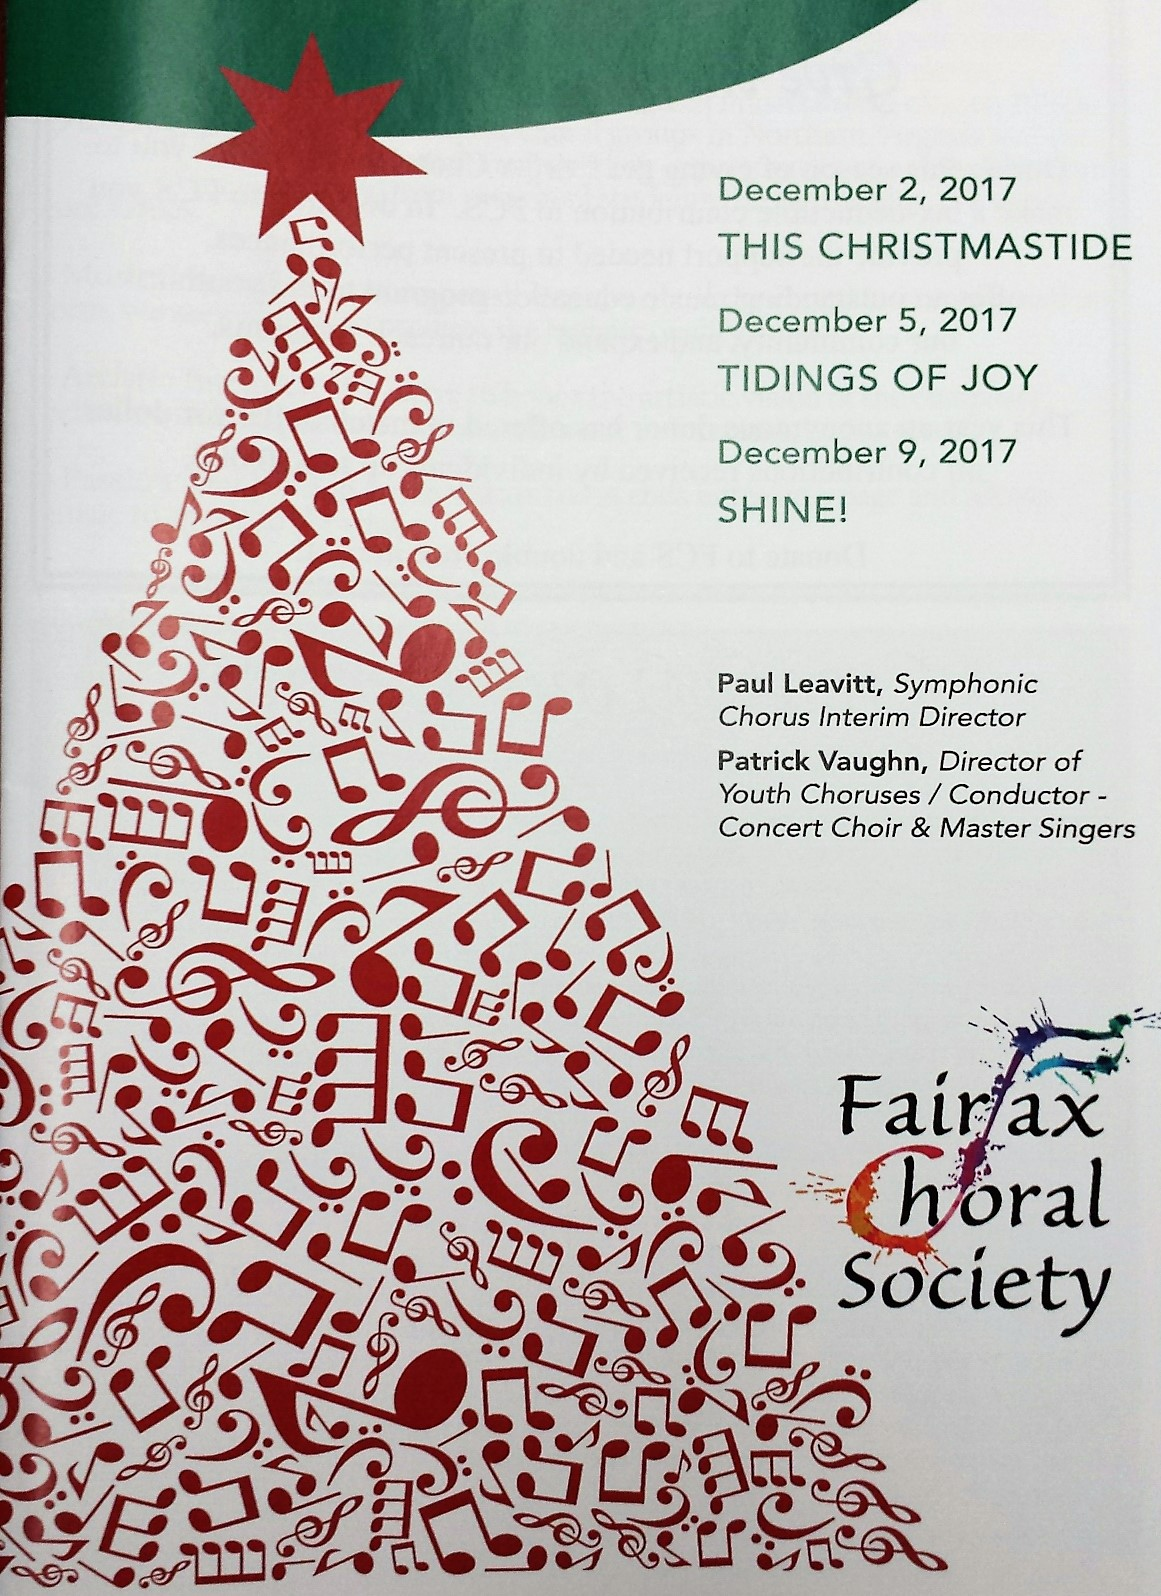 This Christmastide ~ CD Recording – The Fairfax Choral Society